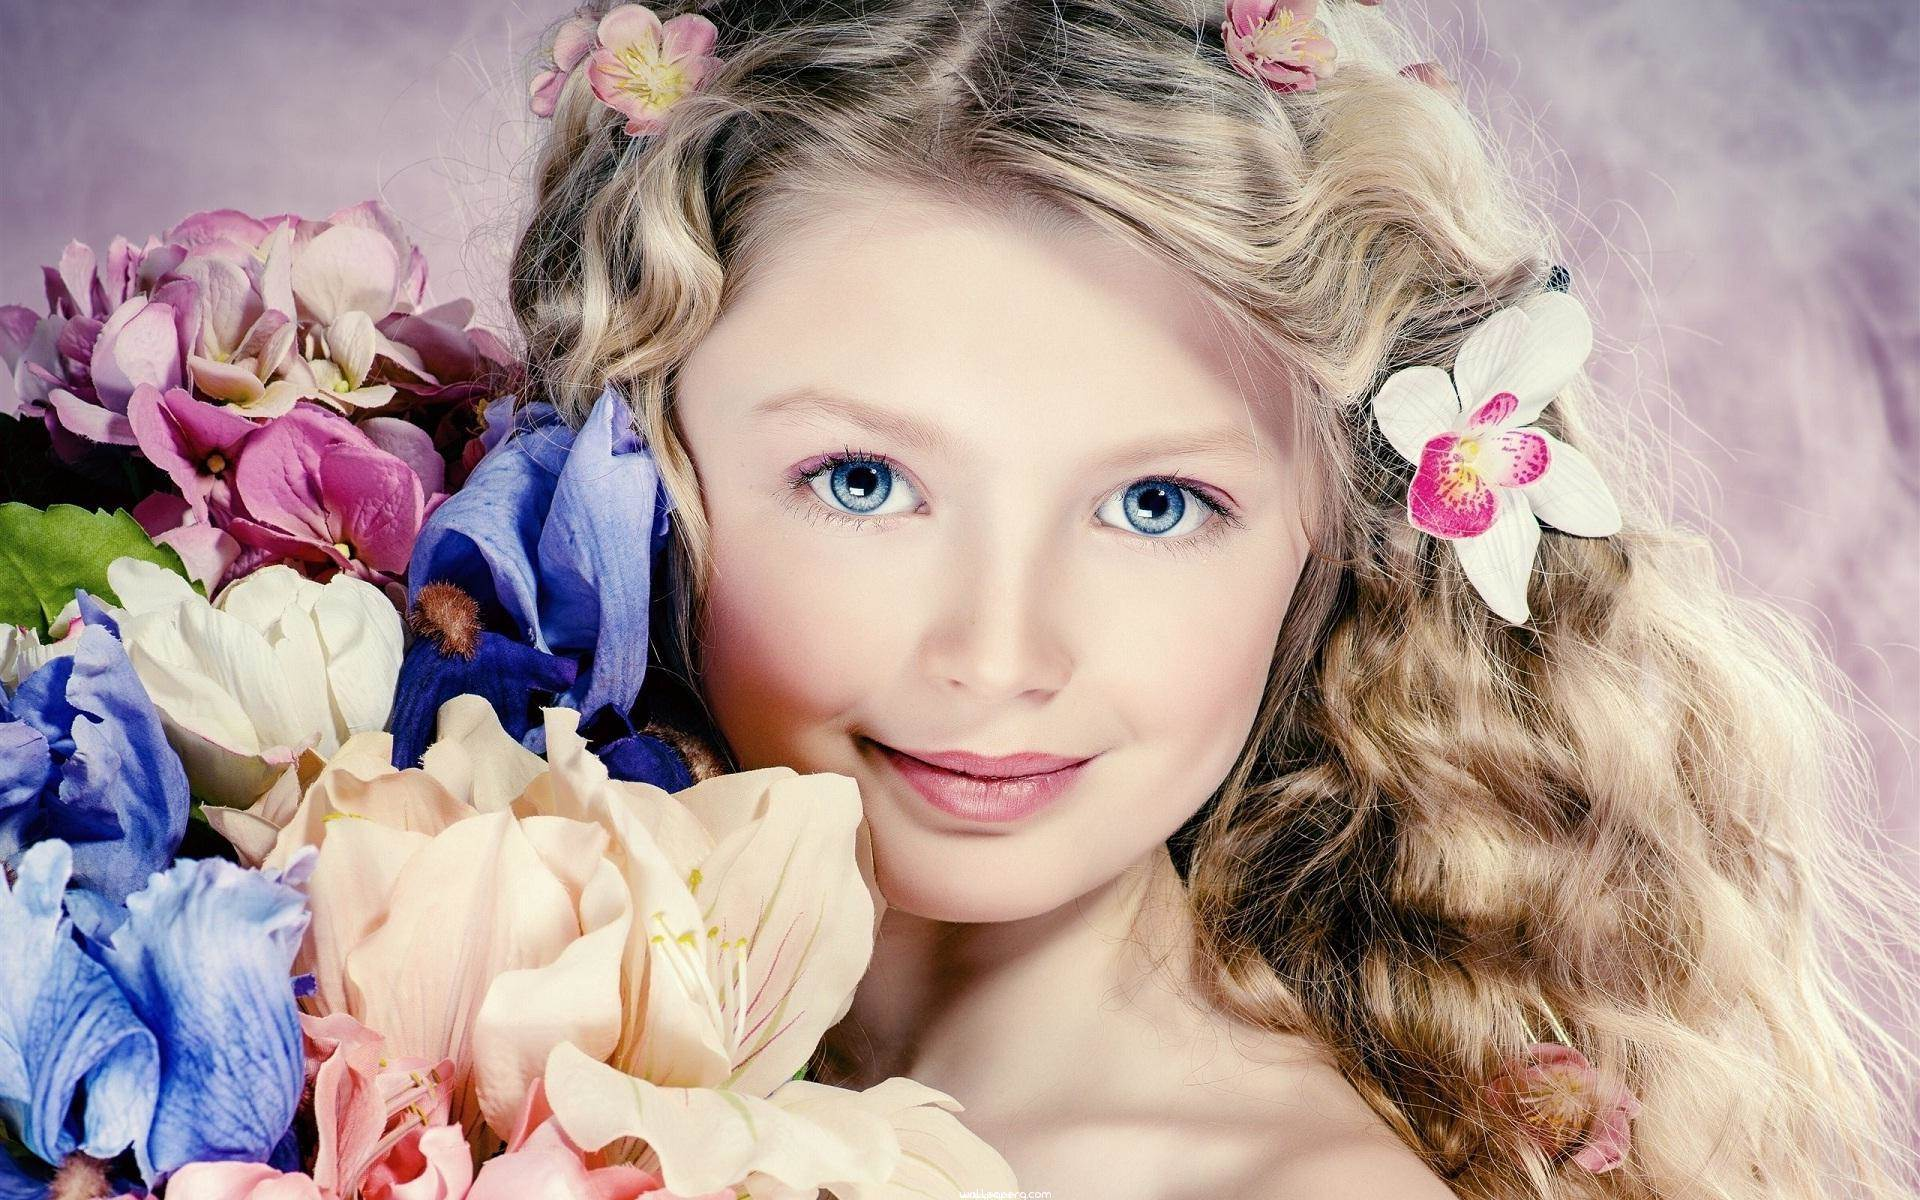 Most Beautiful Baby Girl Wallpapers Hd Pictures Uamp Images Hd 1920x1200